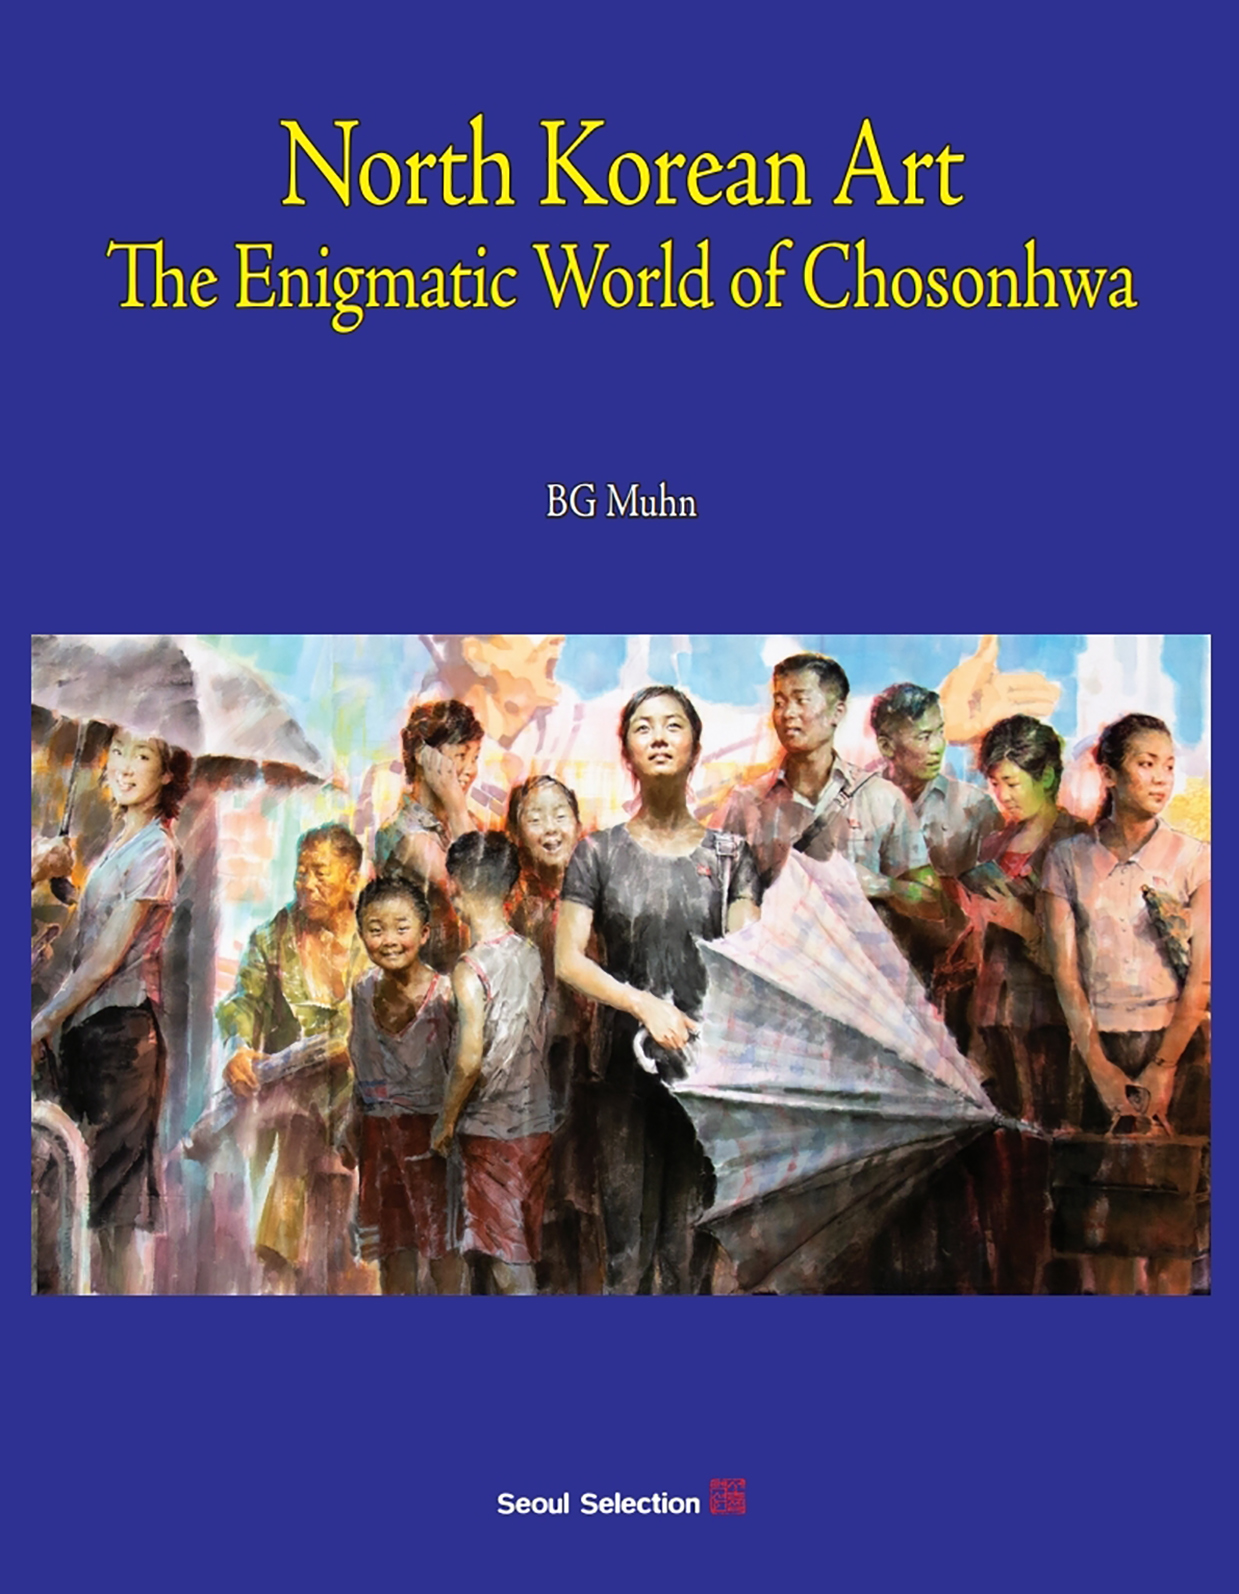 North Korean Art: The Enigmatic World of Chosonhwa